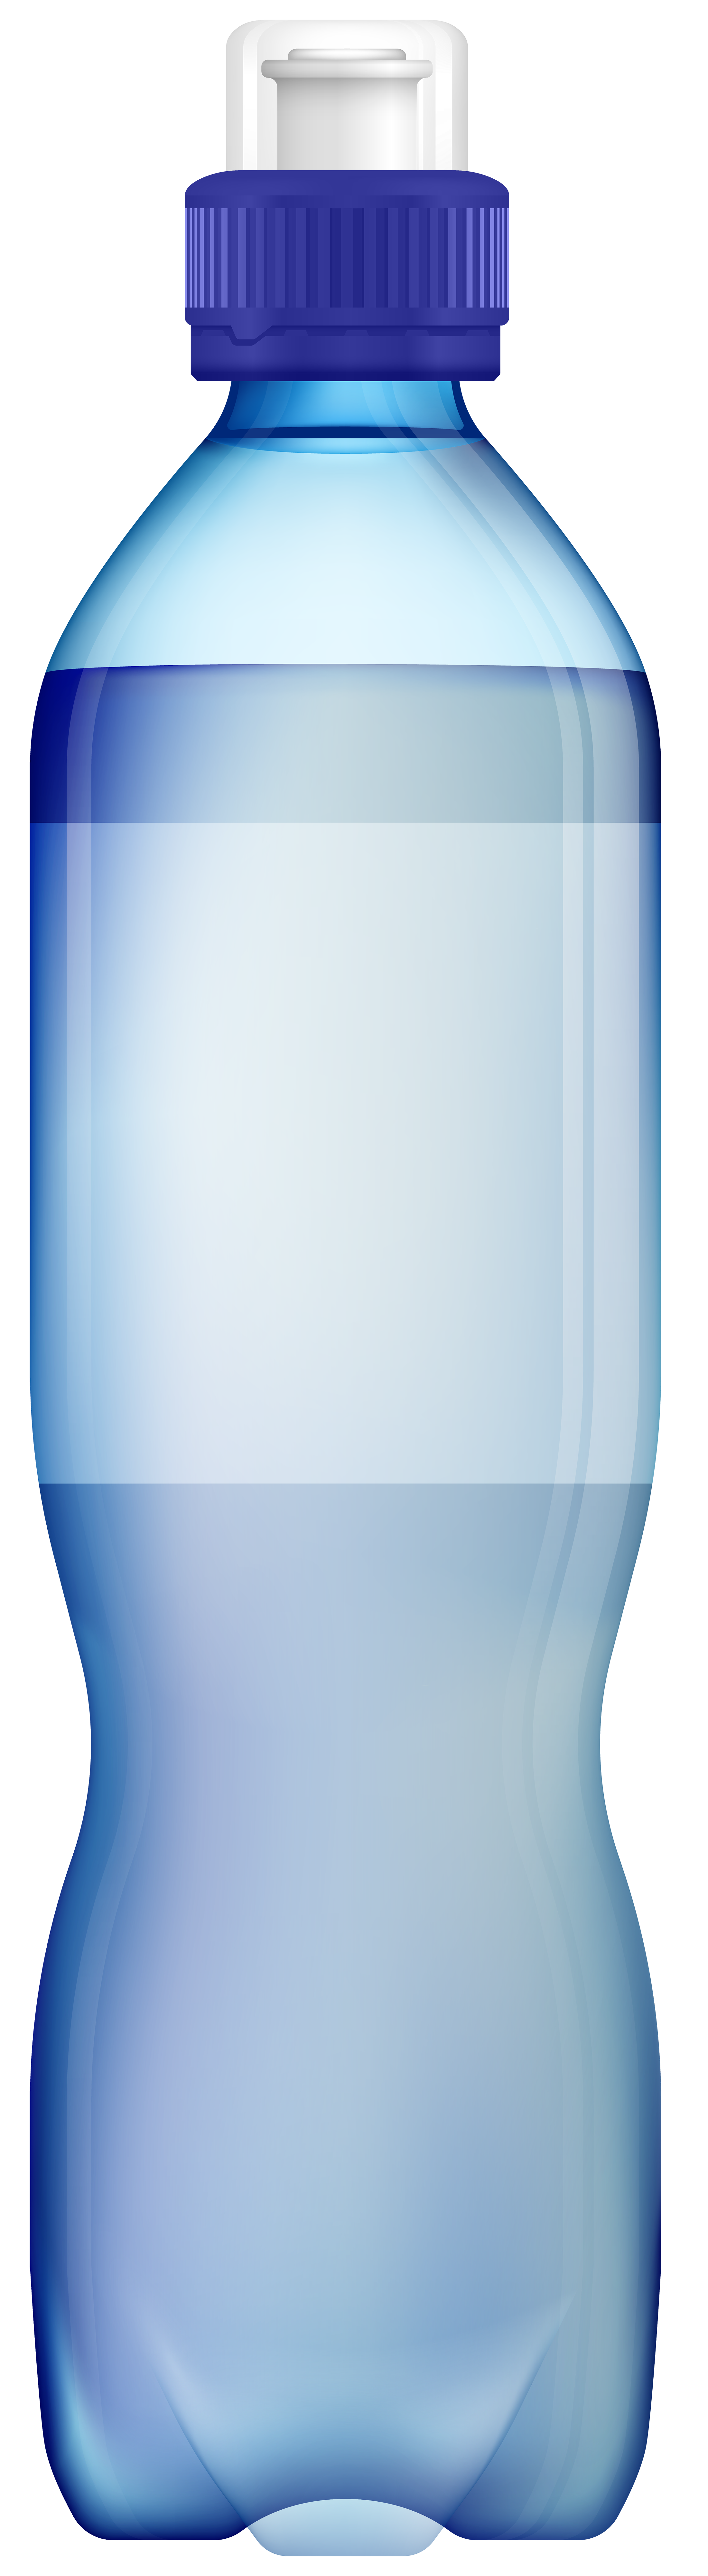 Clip art mineral png. Water clipart water bottle